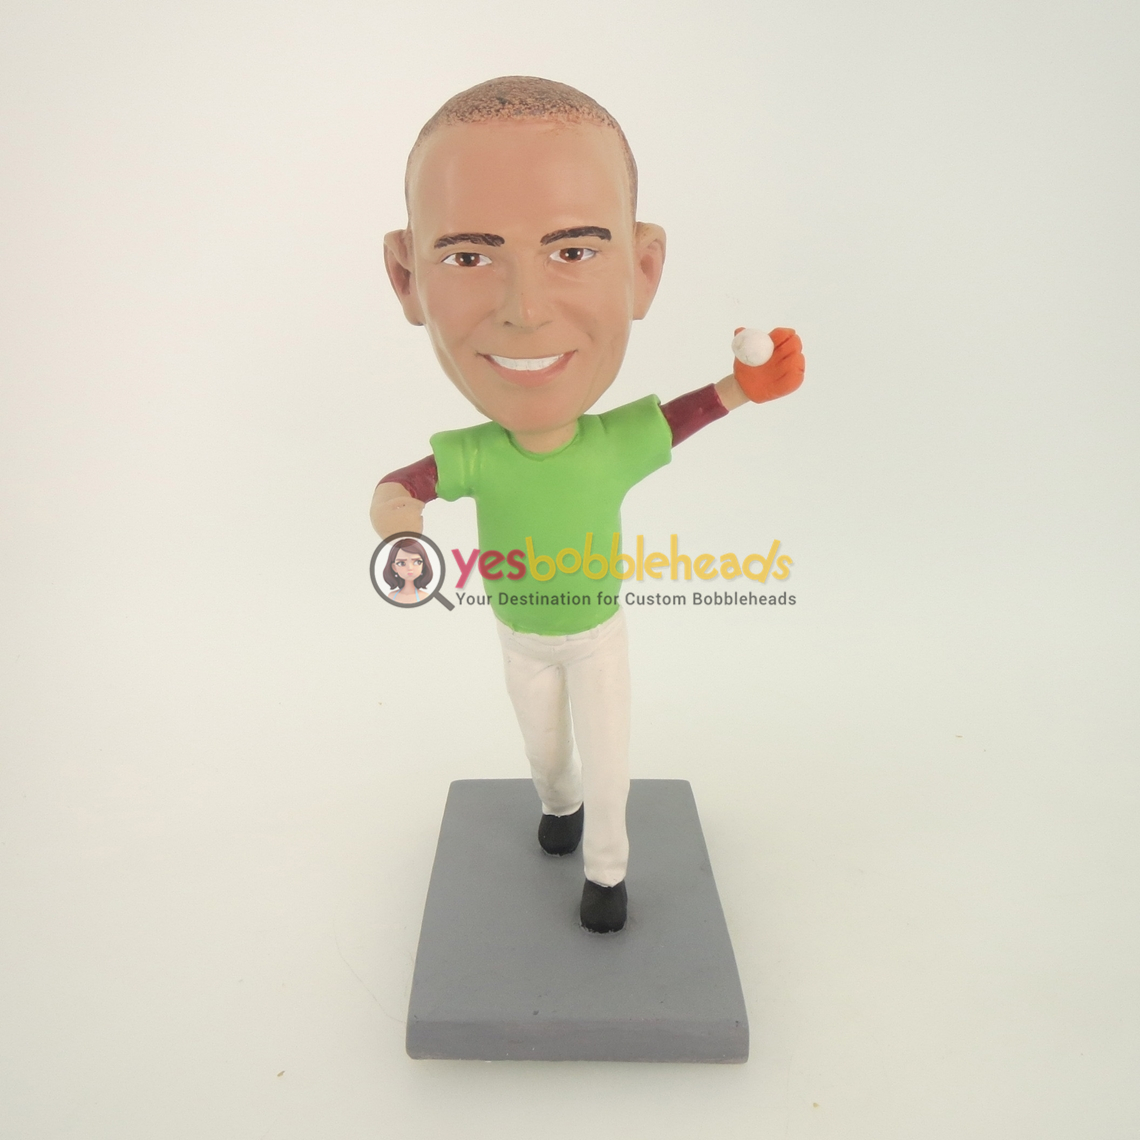 Picture of Custom Bobblehead Doll: Man Catching Baseball